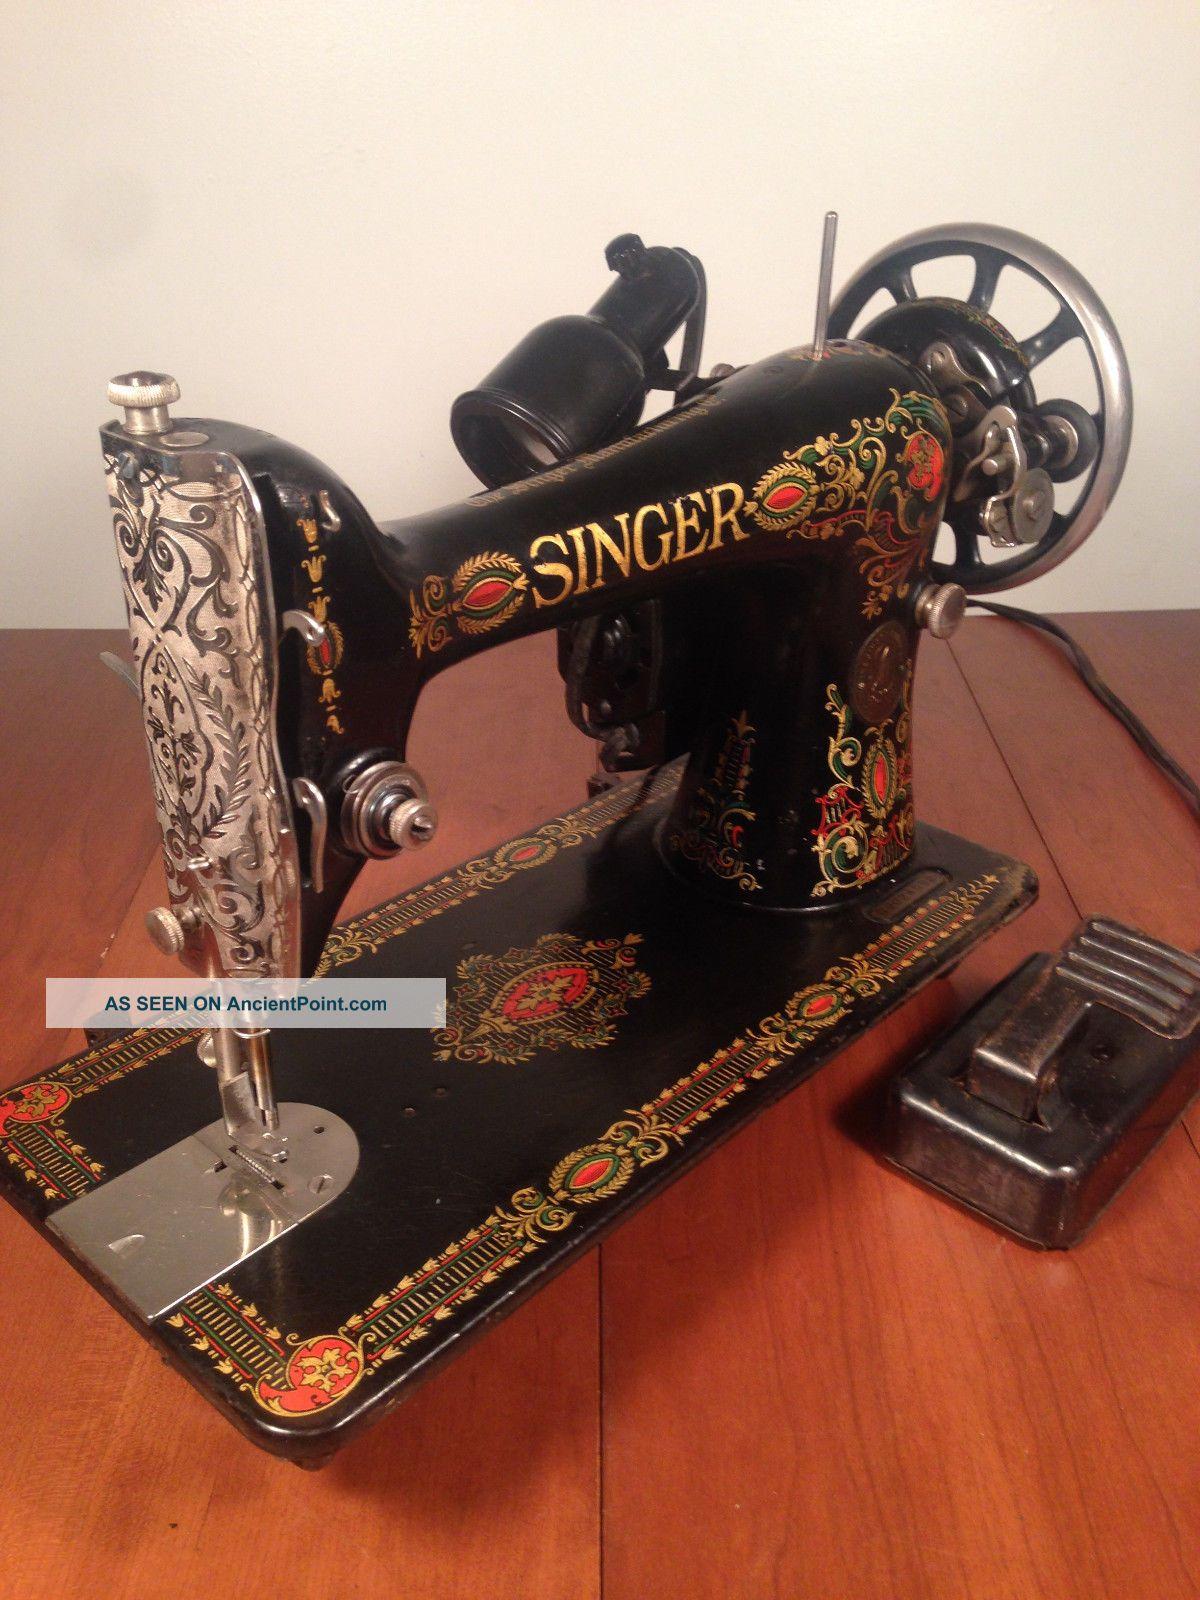 Antique Vintage Singer Model 66 Red Eye Sewing Machine Graphics Sewing Machines photo